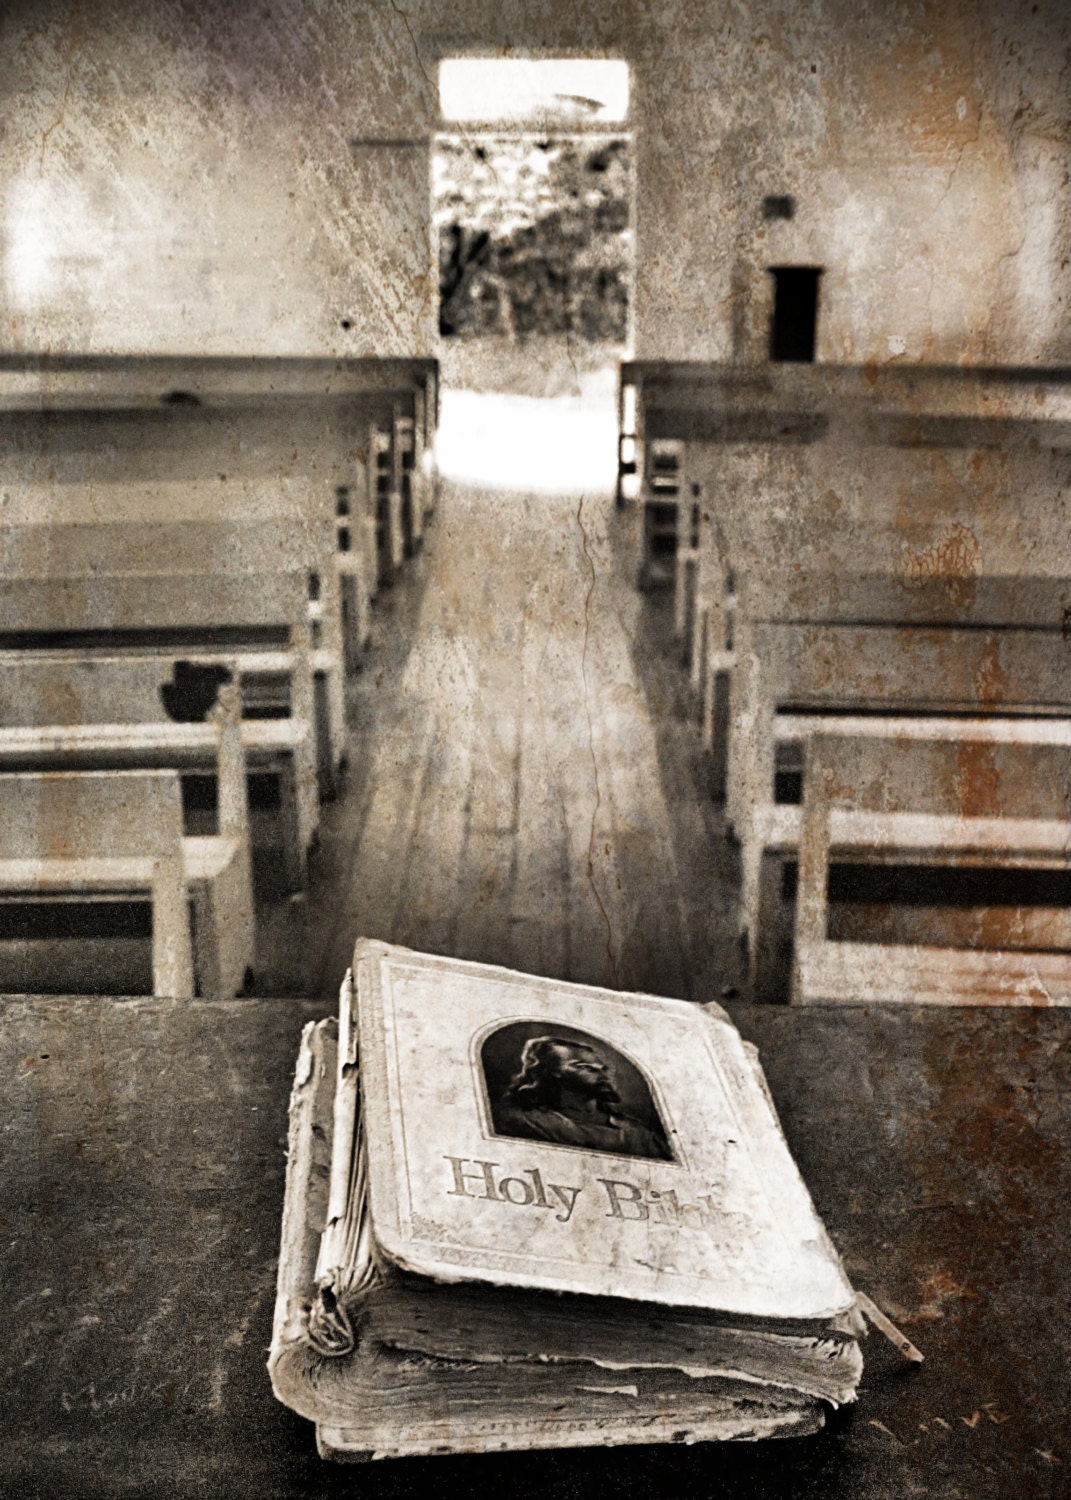 5x x7 Church Photo, Black And White Photography, Rustic Home Decor, Old Church Print, Religious Photo - GiaJuryPhotography